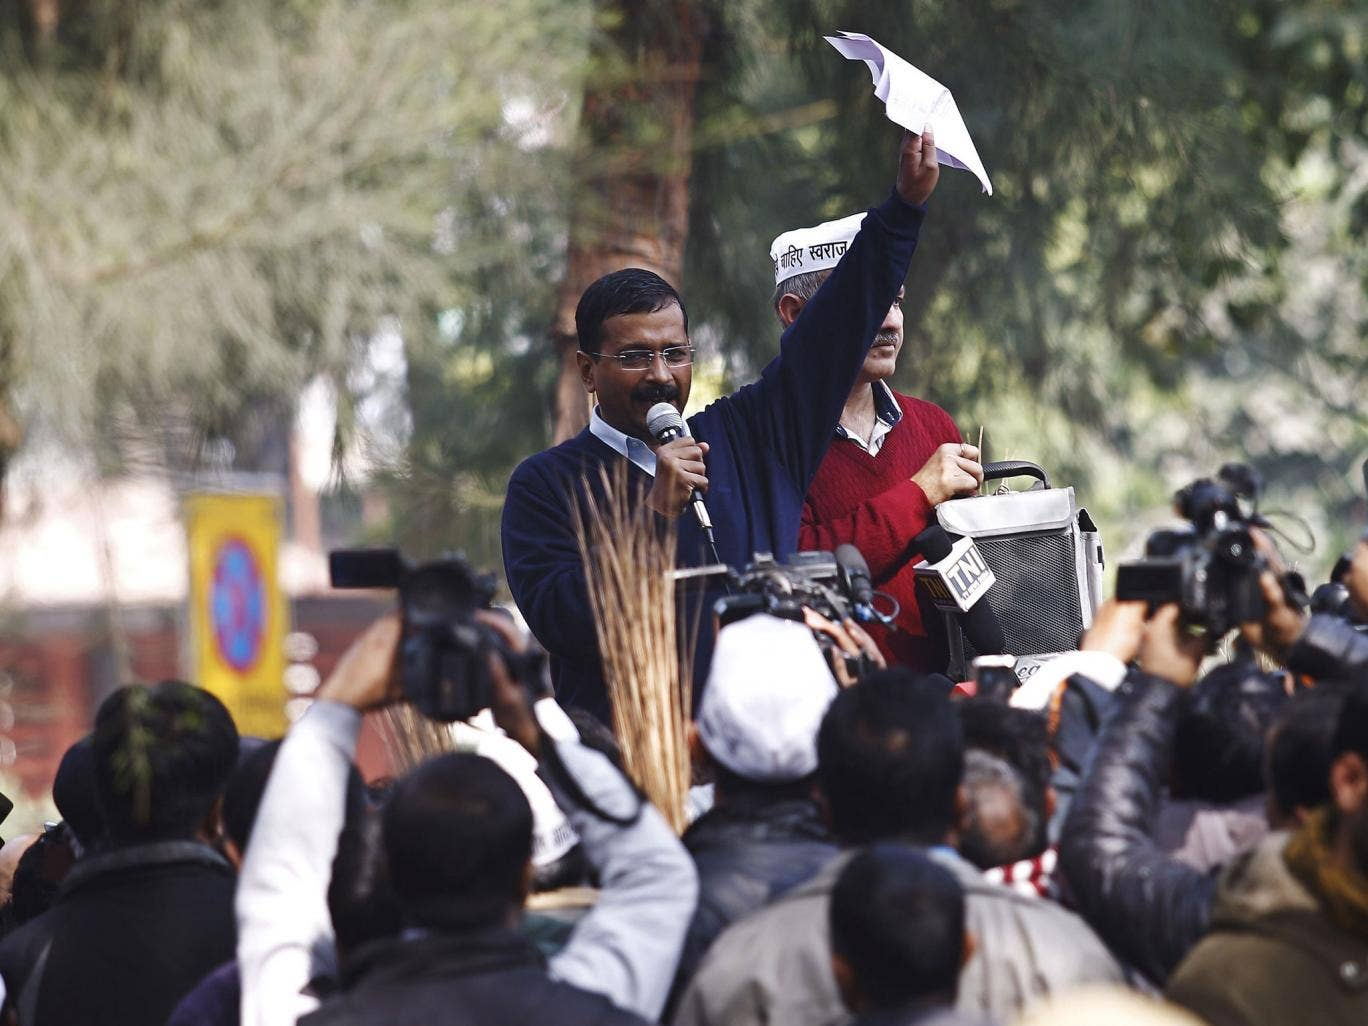 Delhi's Chief Minister Arvind Kejriwal addresses his supporters during a protest in New Delhi